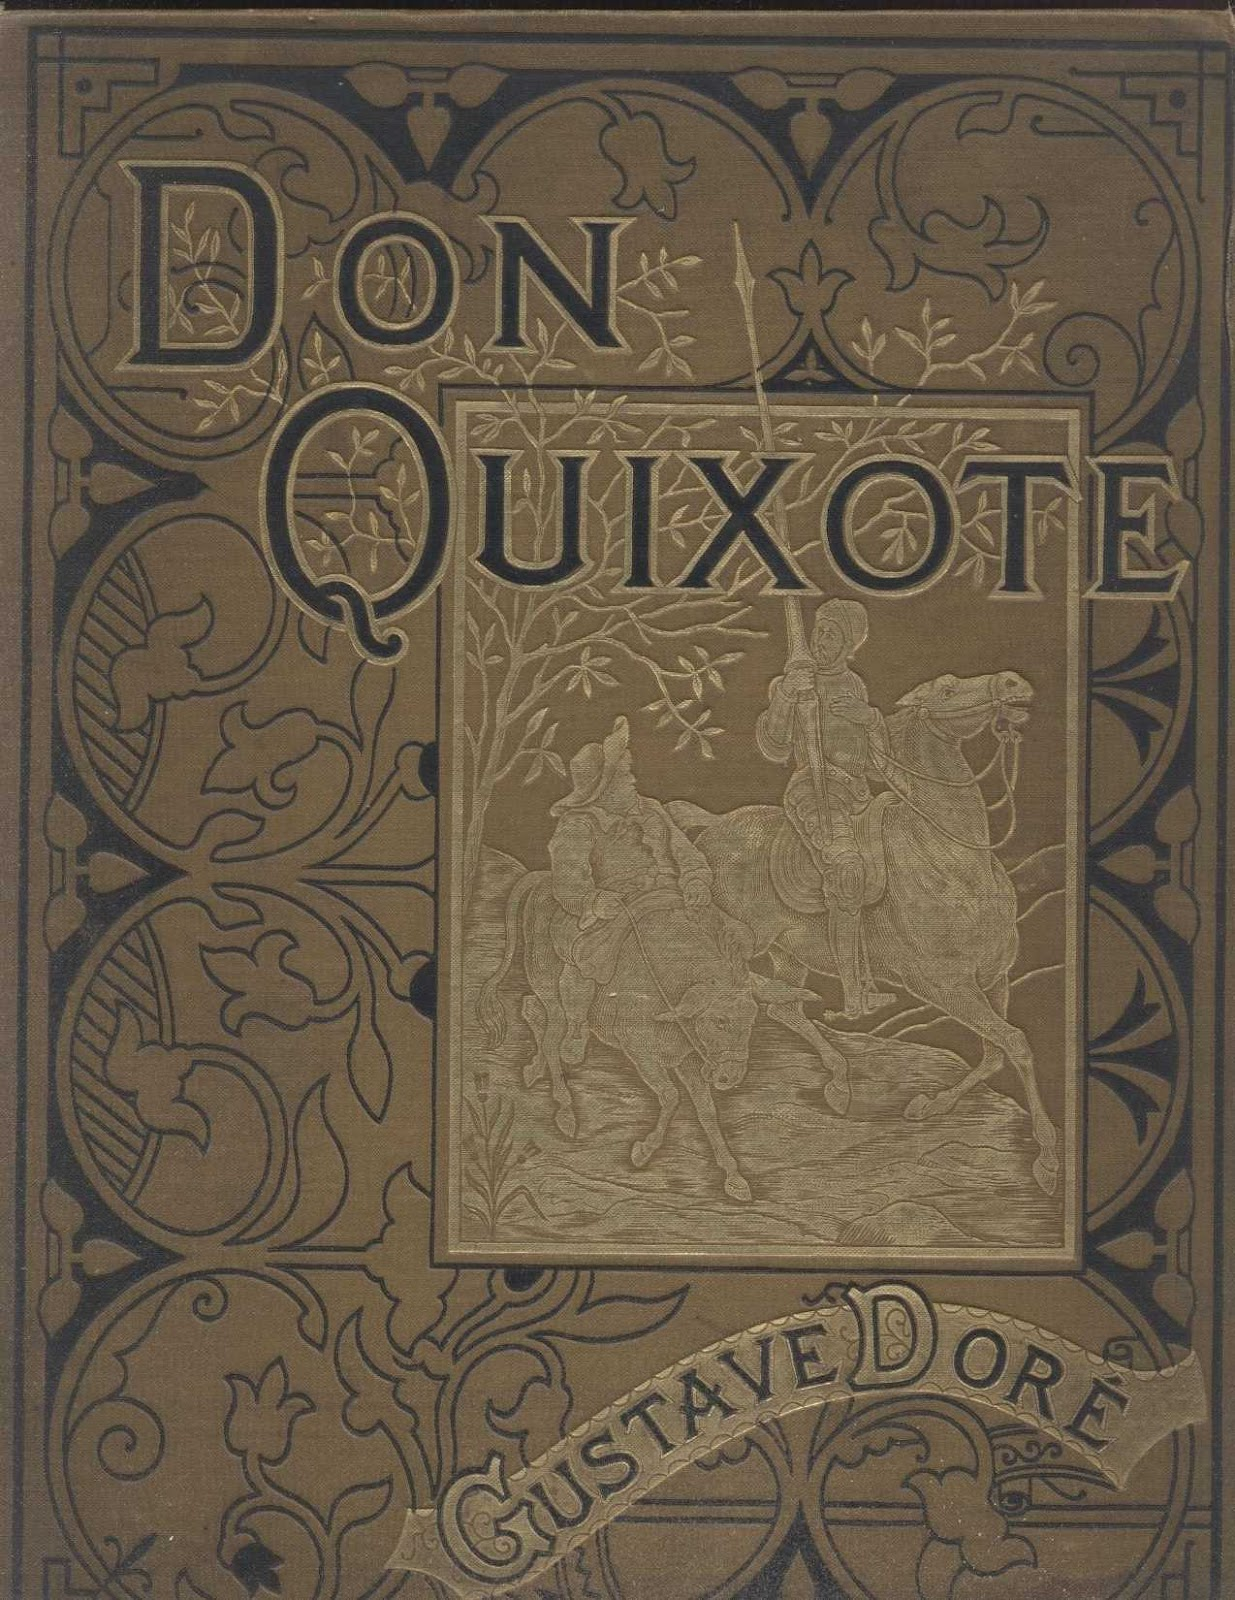 Adventures of Don Quixote : Free Download, Borrow, and